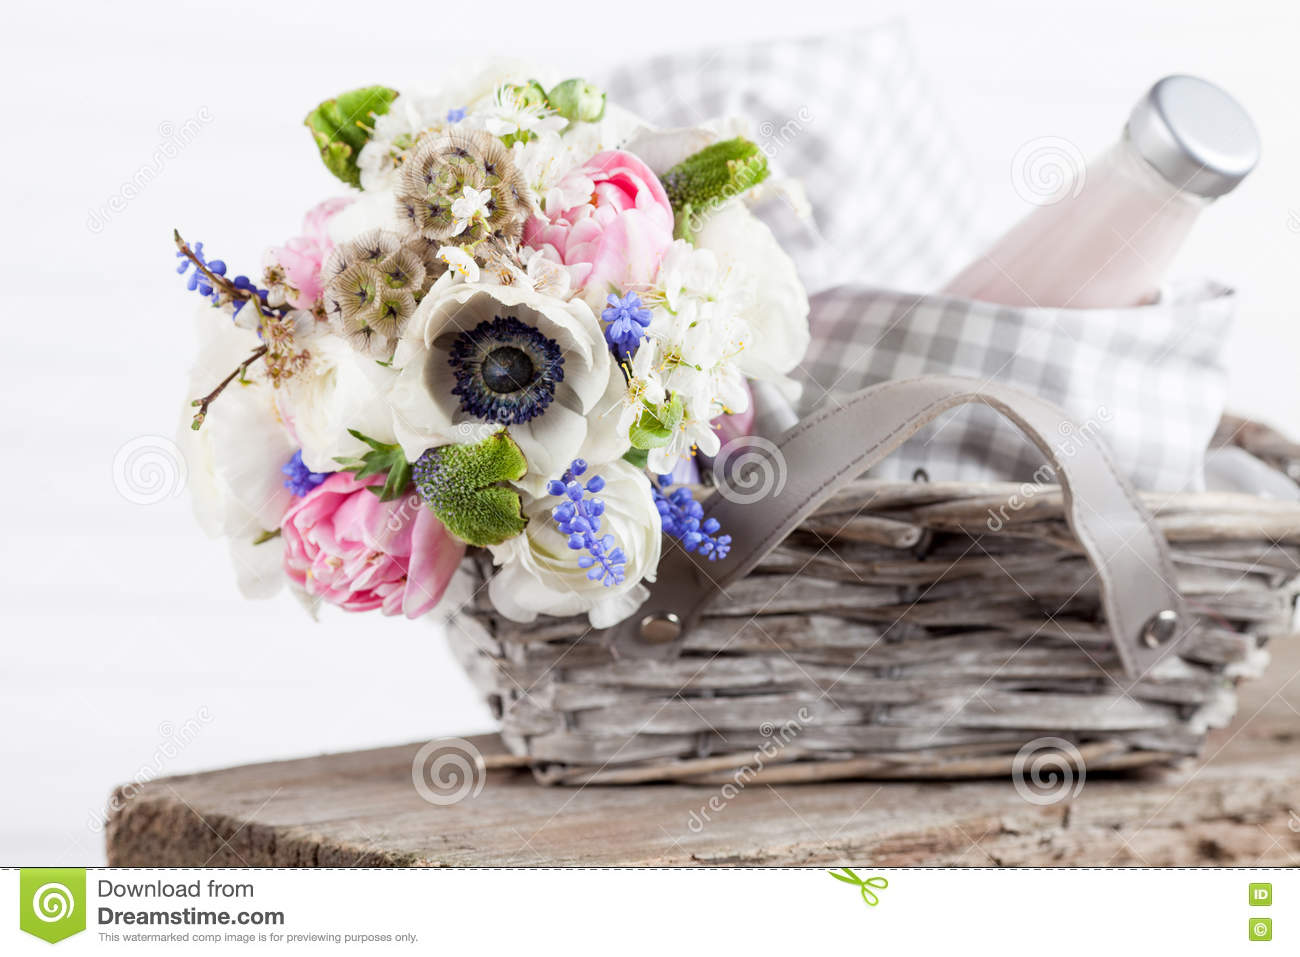 Rustic Picnic Basket With Flowers Stock Image Image Of Bunch Hyacinths 70315649